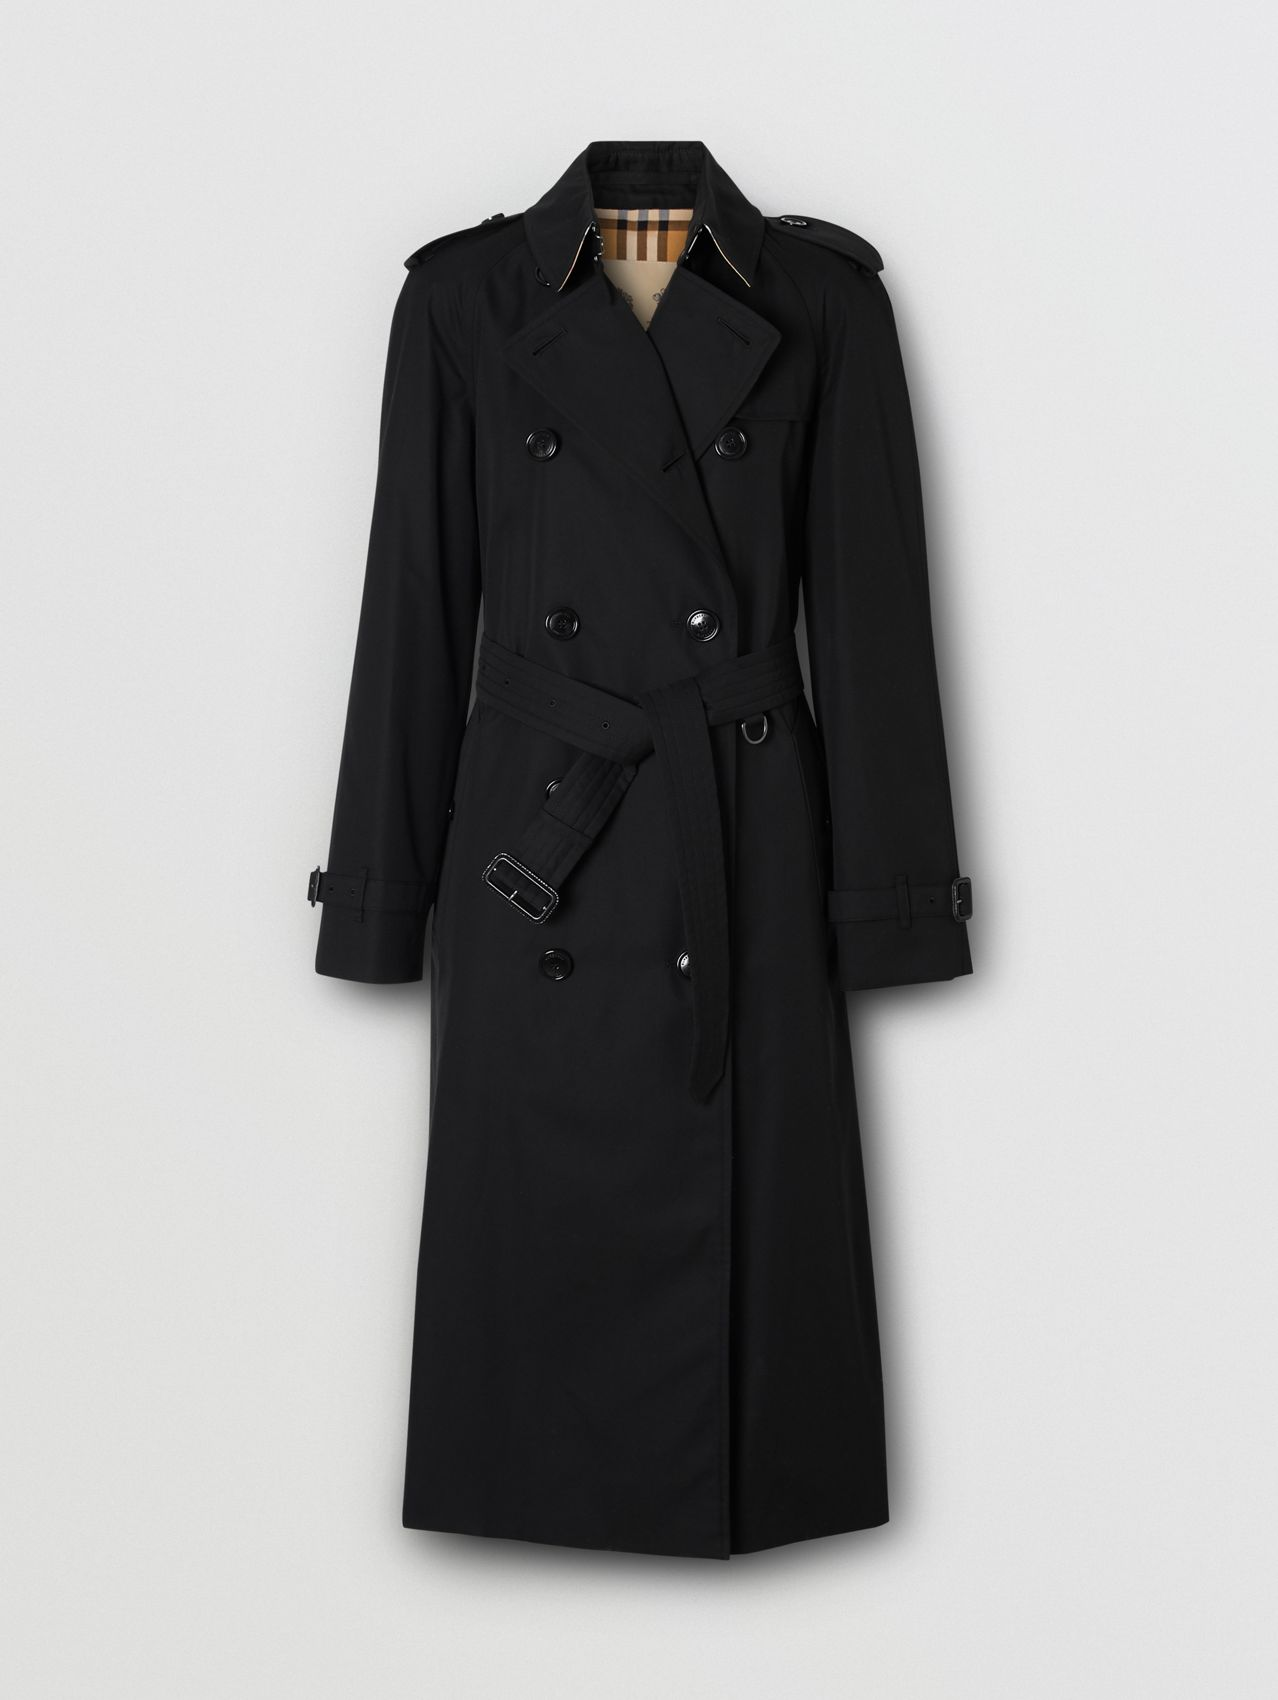 The Long Waterloo Heritage Trench Coat in Black